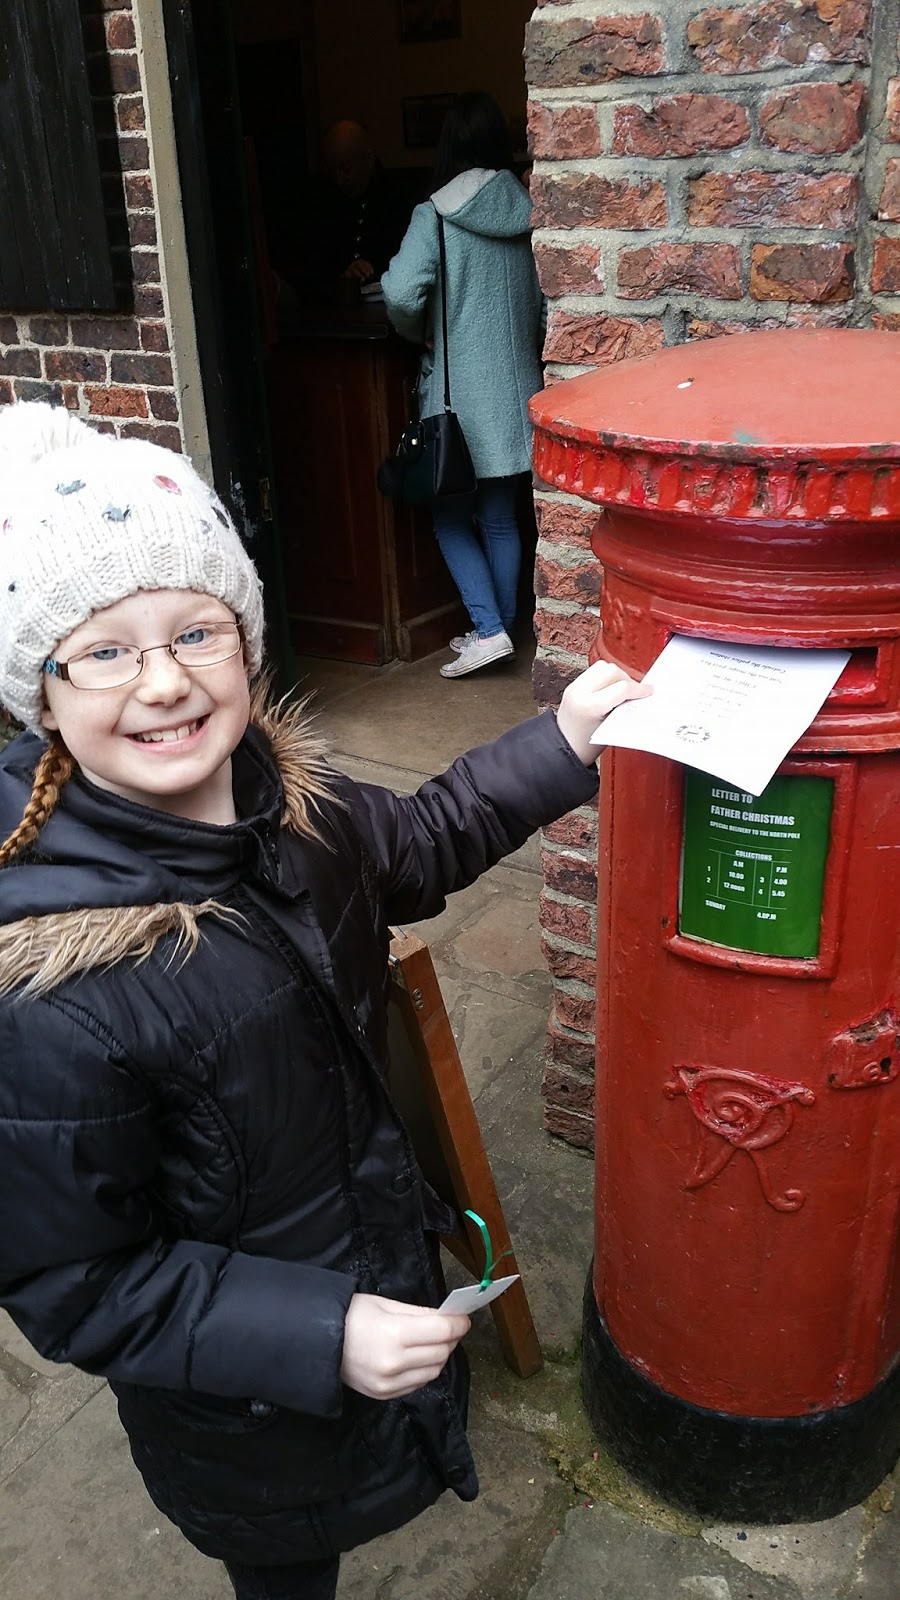 Preston Park Museum & Grounds | Christmas Bazaar and visiting Santa 2016 - Posting letters to Santa